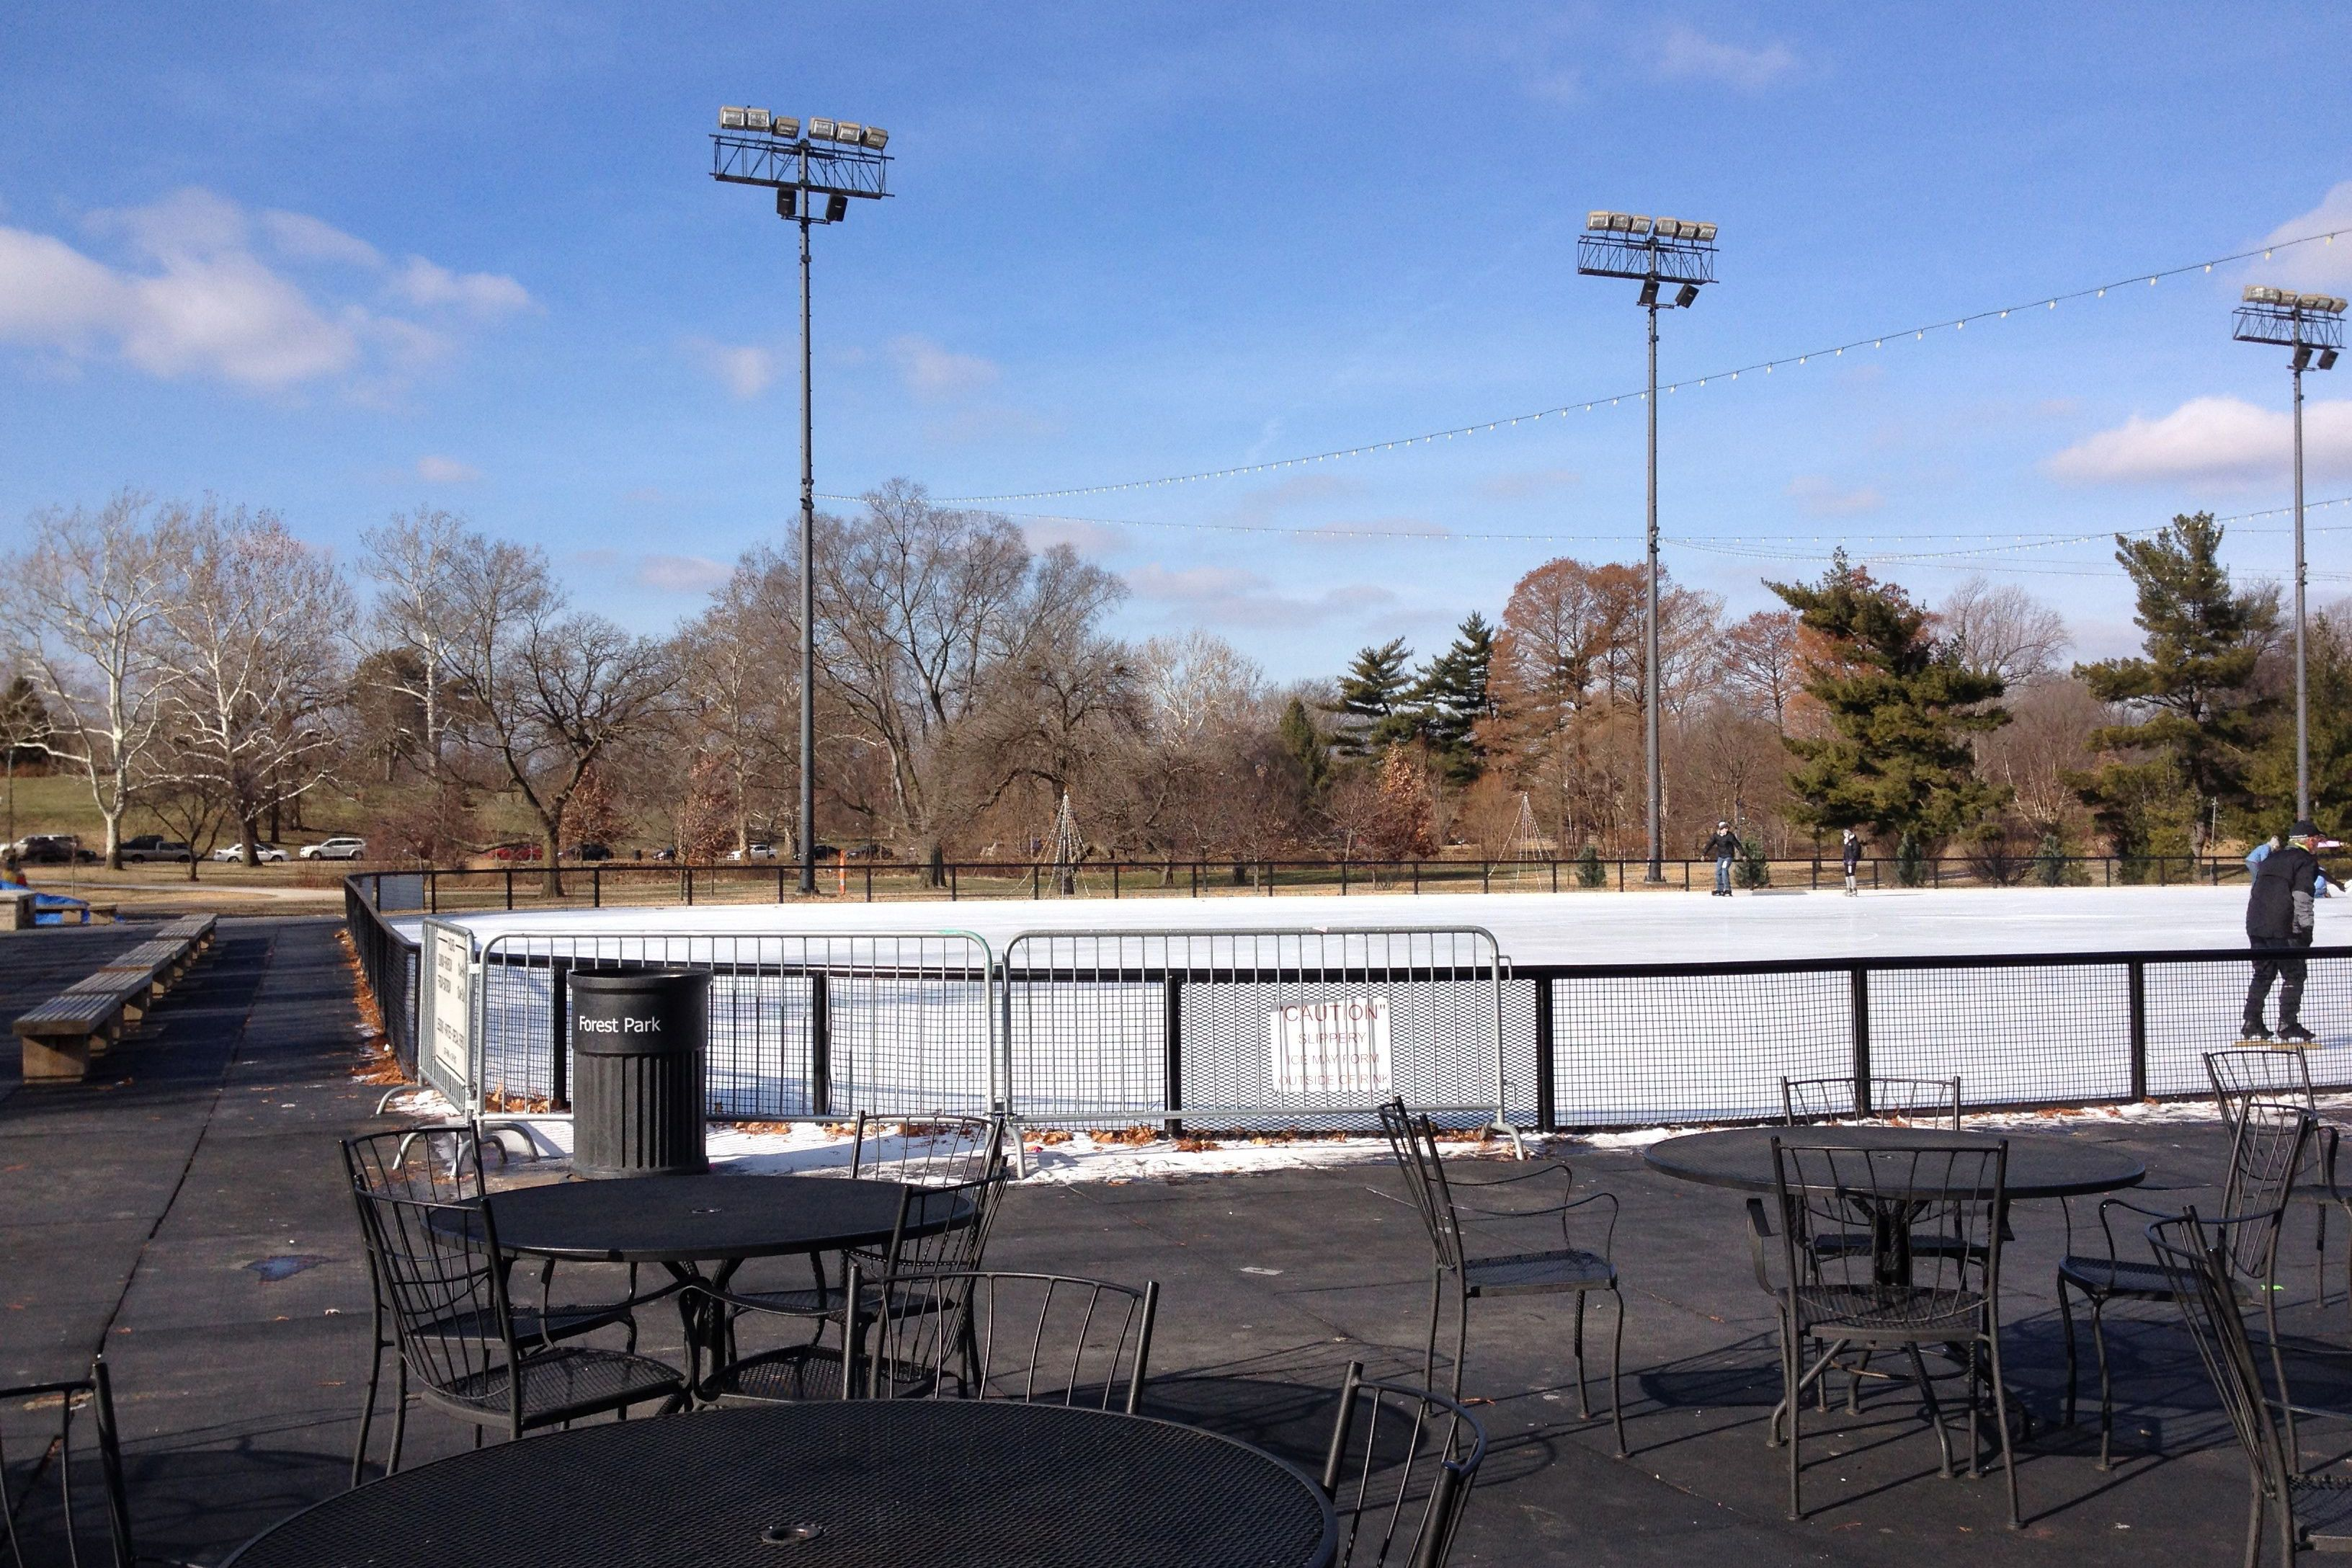 Steinberg Stating Rink in Forest Park